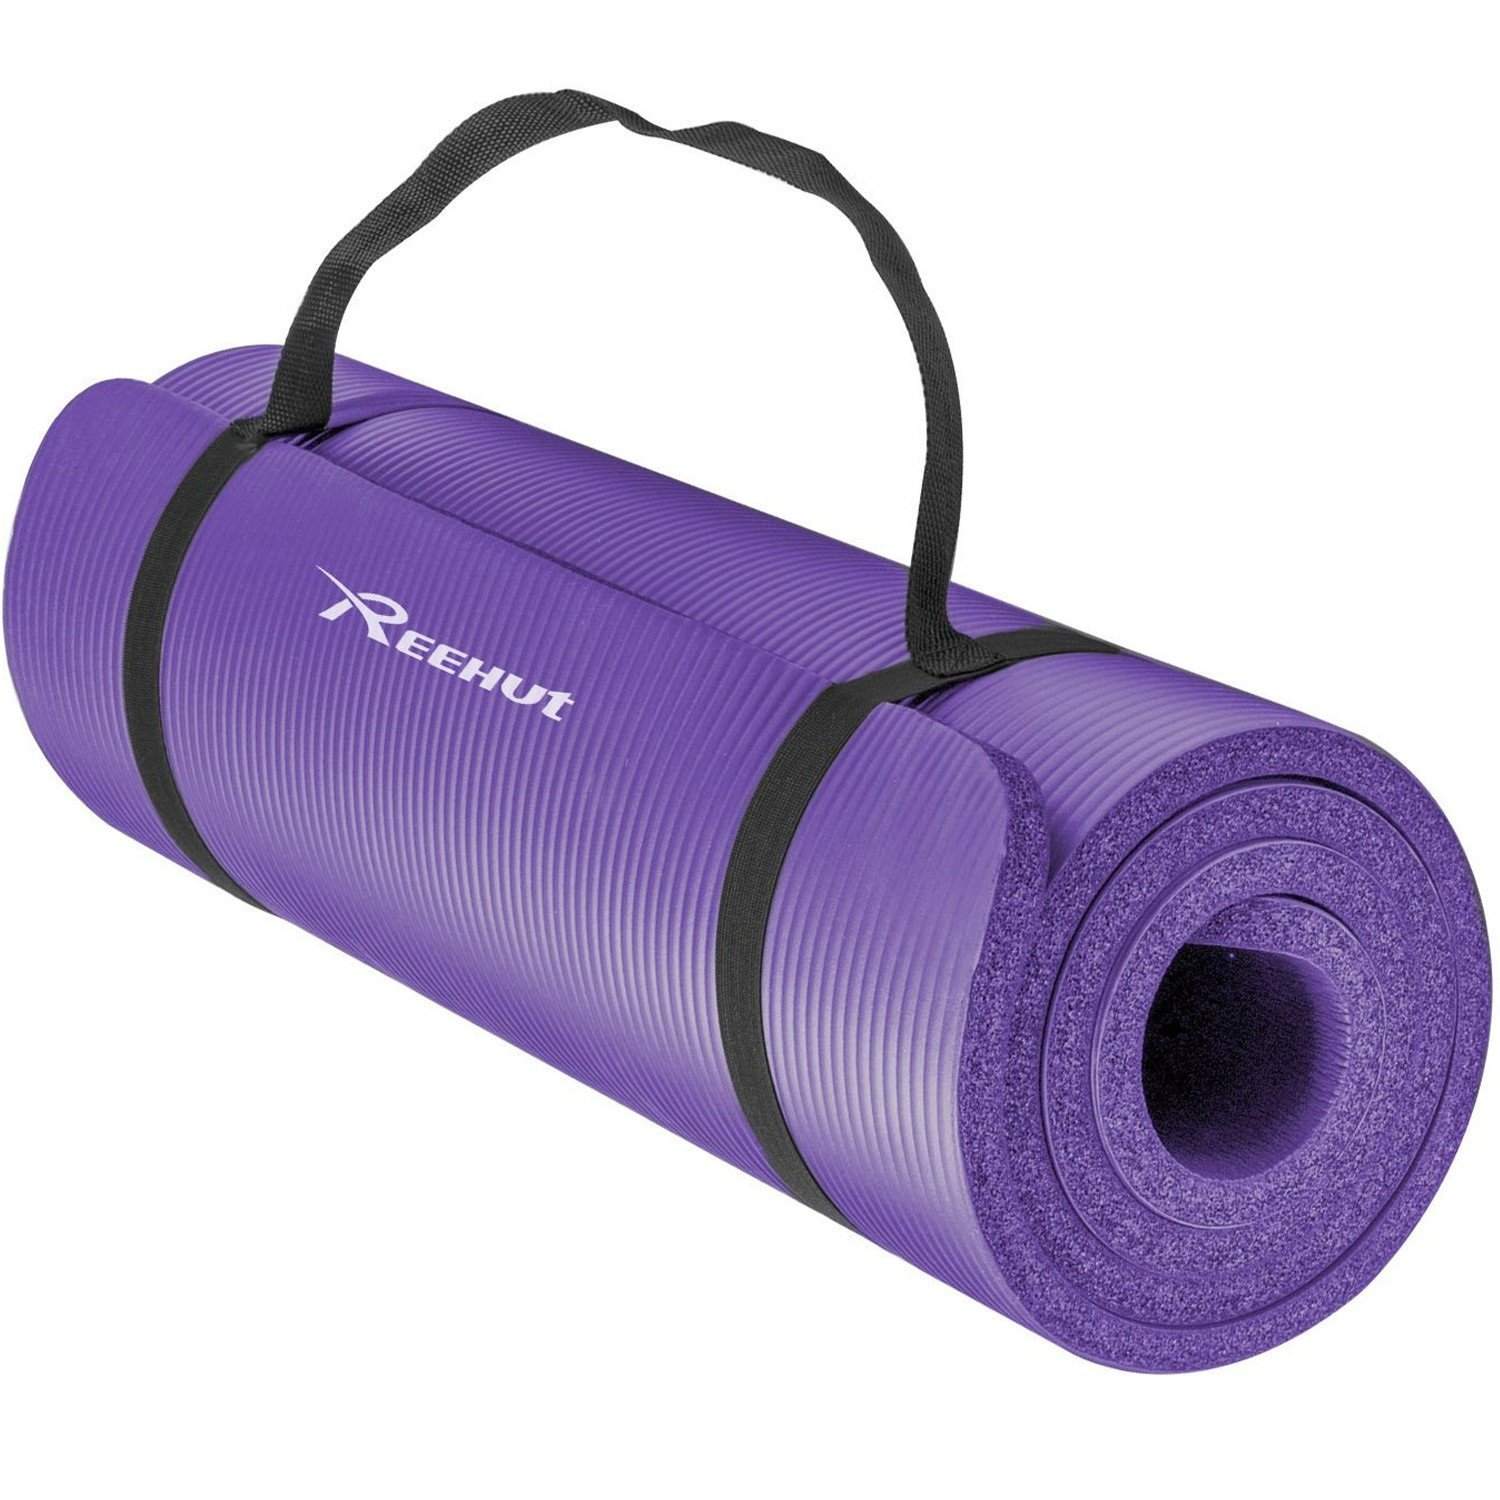 Reehut NBR Exercise Yoga Mat